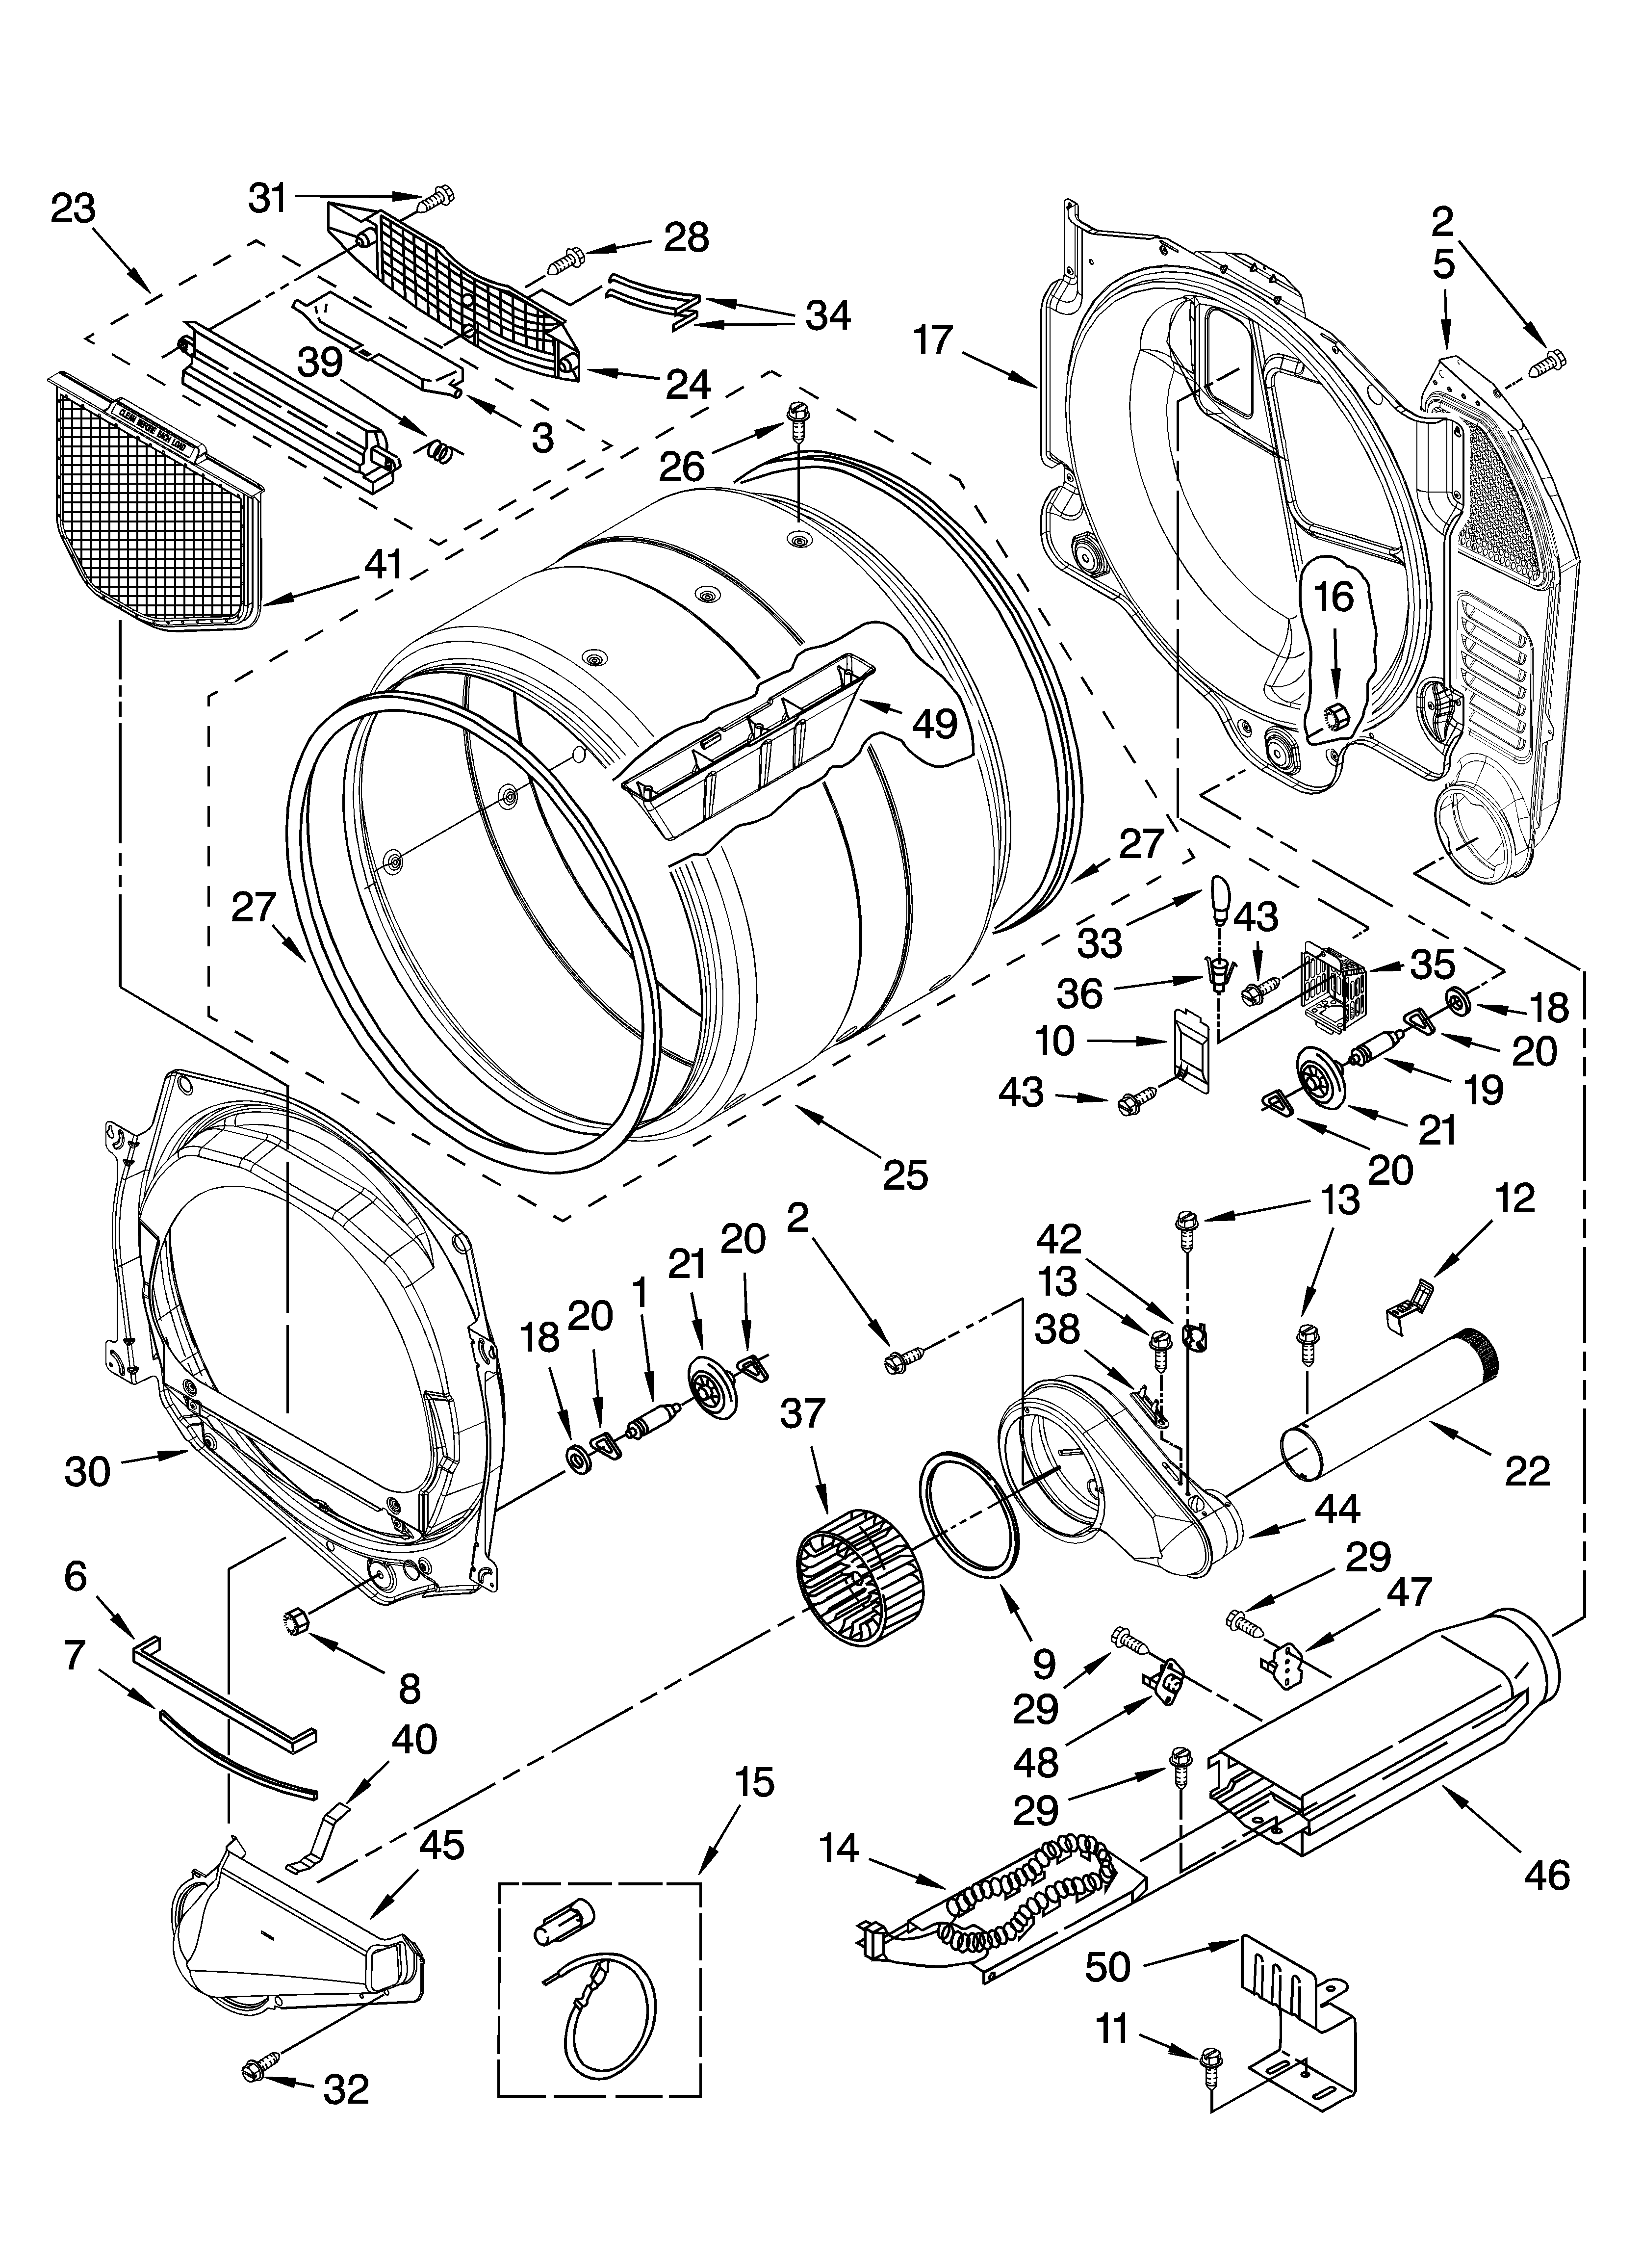 Whirlpool WED8300SW2 bulkhead parts diagram